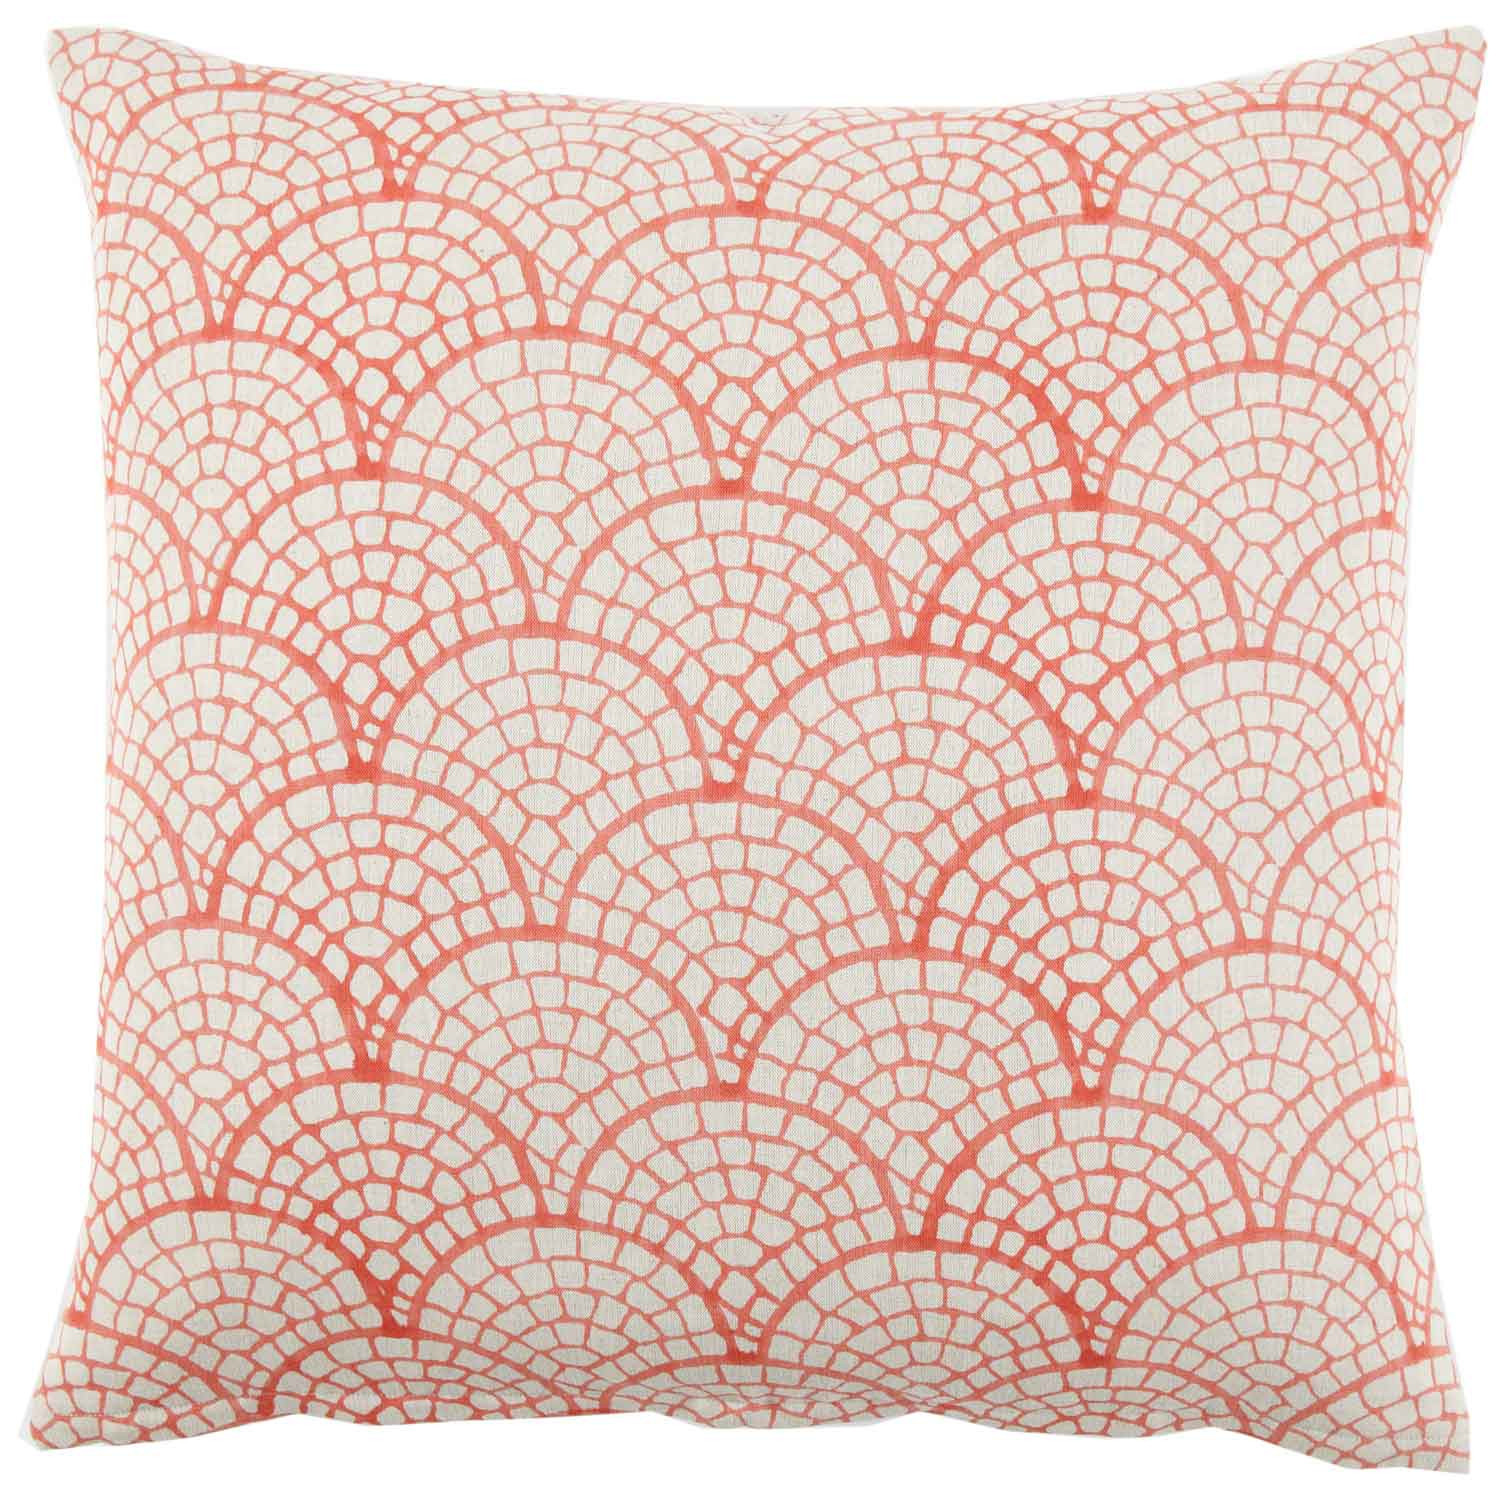 John Robshaw Quilt Sale | John Robshaw Pillows | John Robshaw Sale